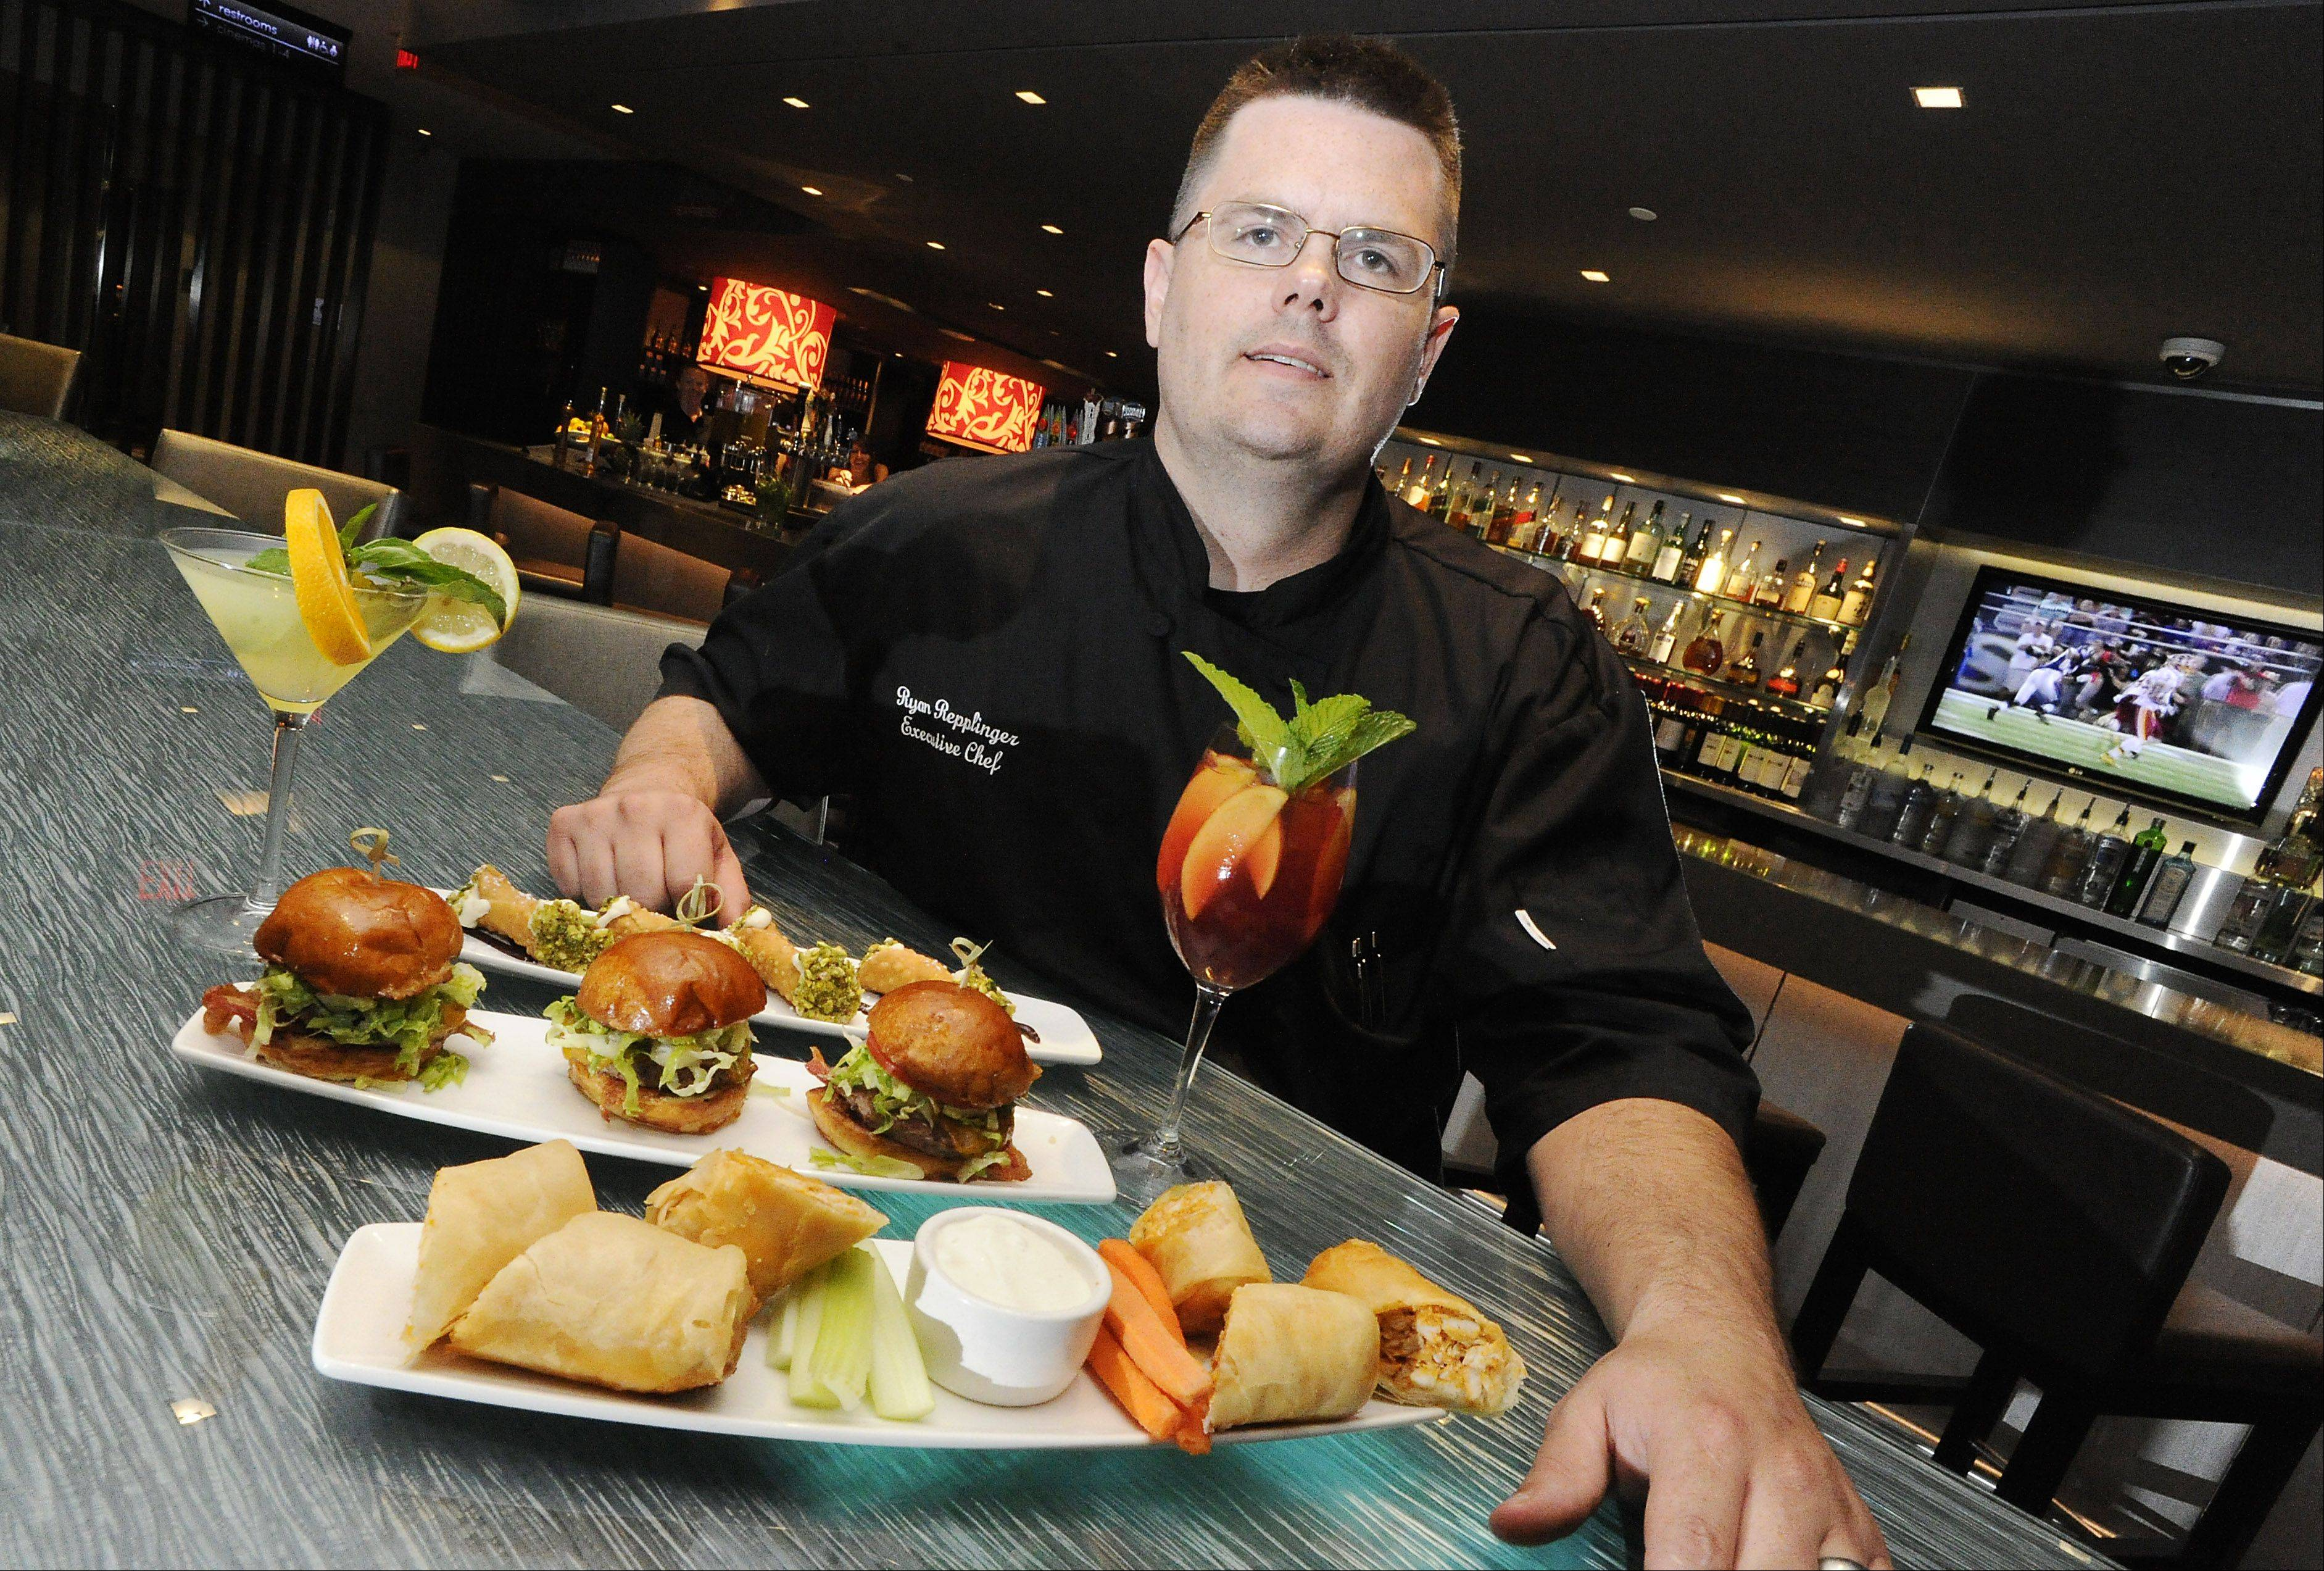 Executive chef Ryan Repplinger of South Elgin leads the kitchen crew at the Salt Sports Bar in South Barrington.